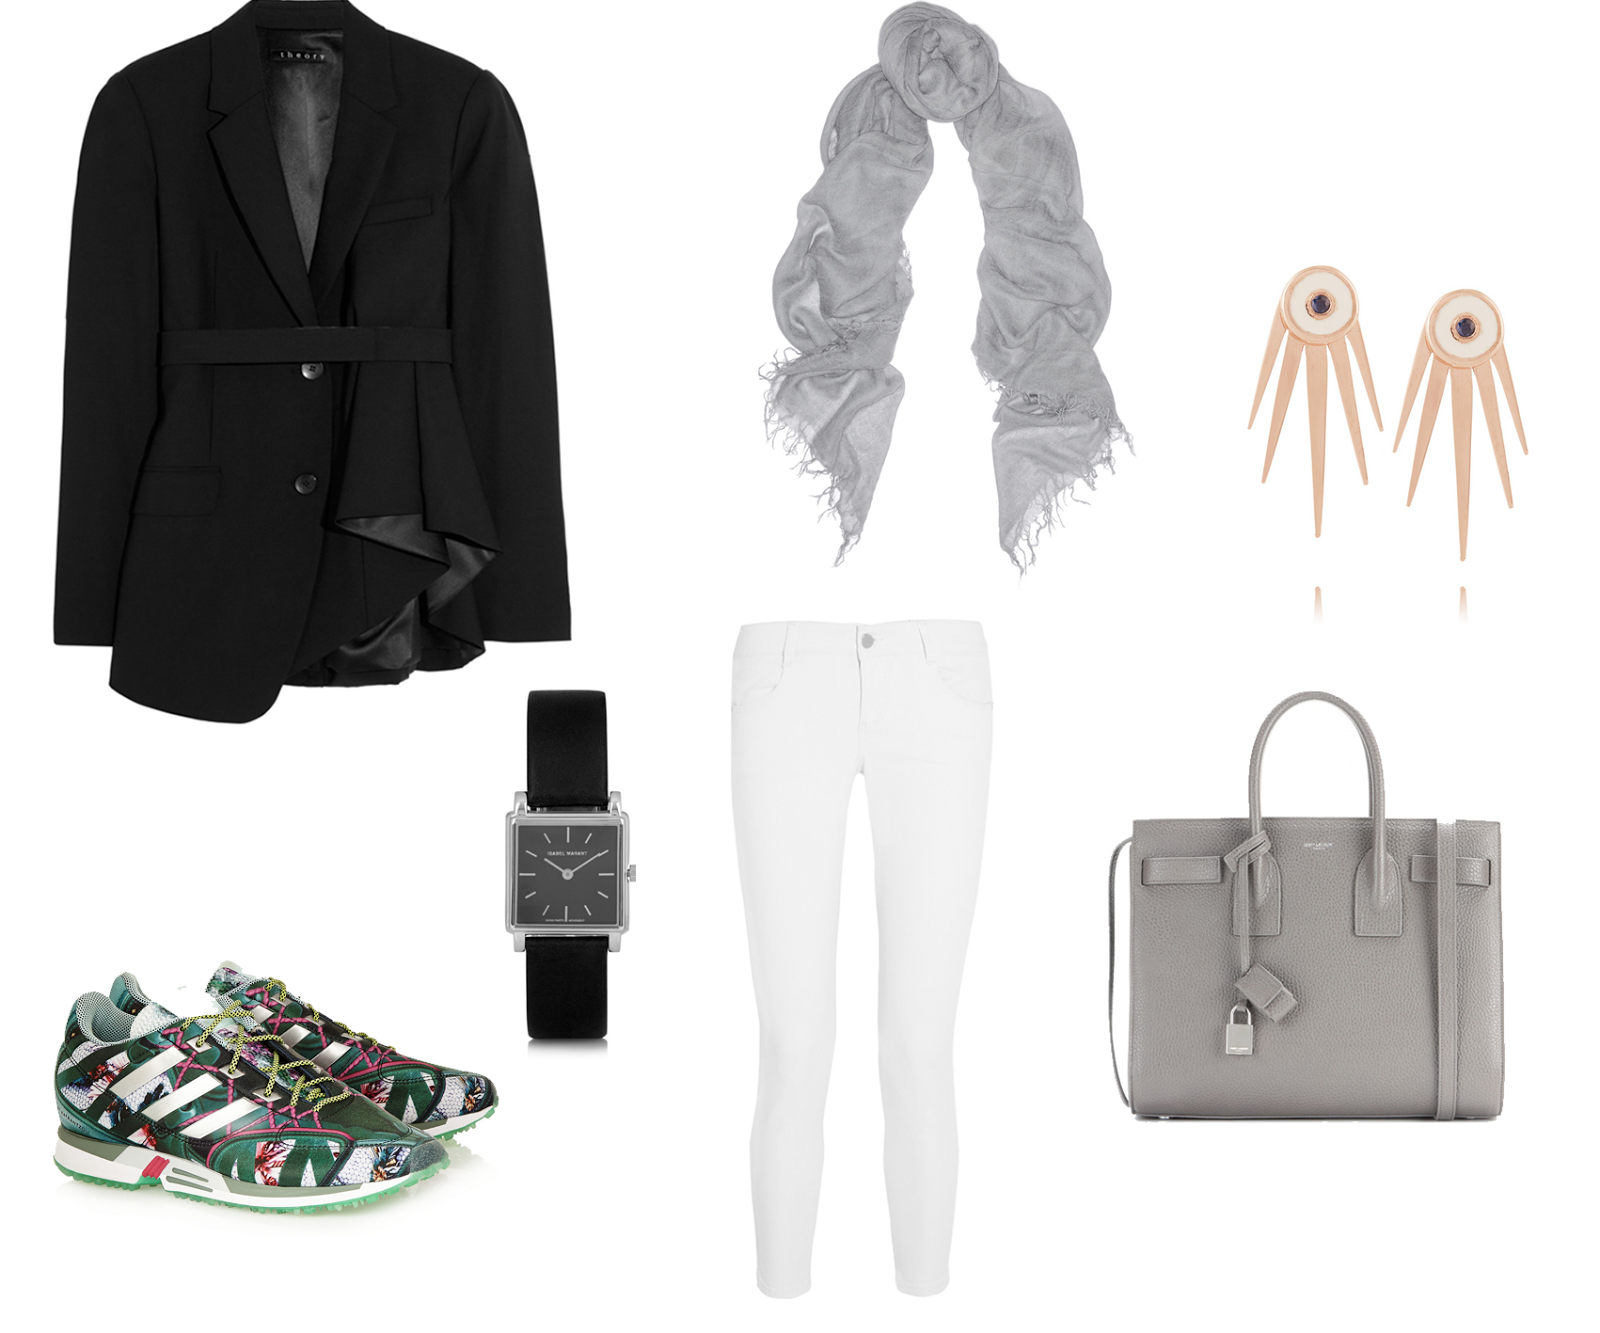 wishlist, theory, adidas, mary katrantzou, stella mccartney, isabel marant, net à porter, fashion blogger, outfit, saint laurent